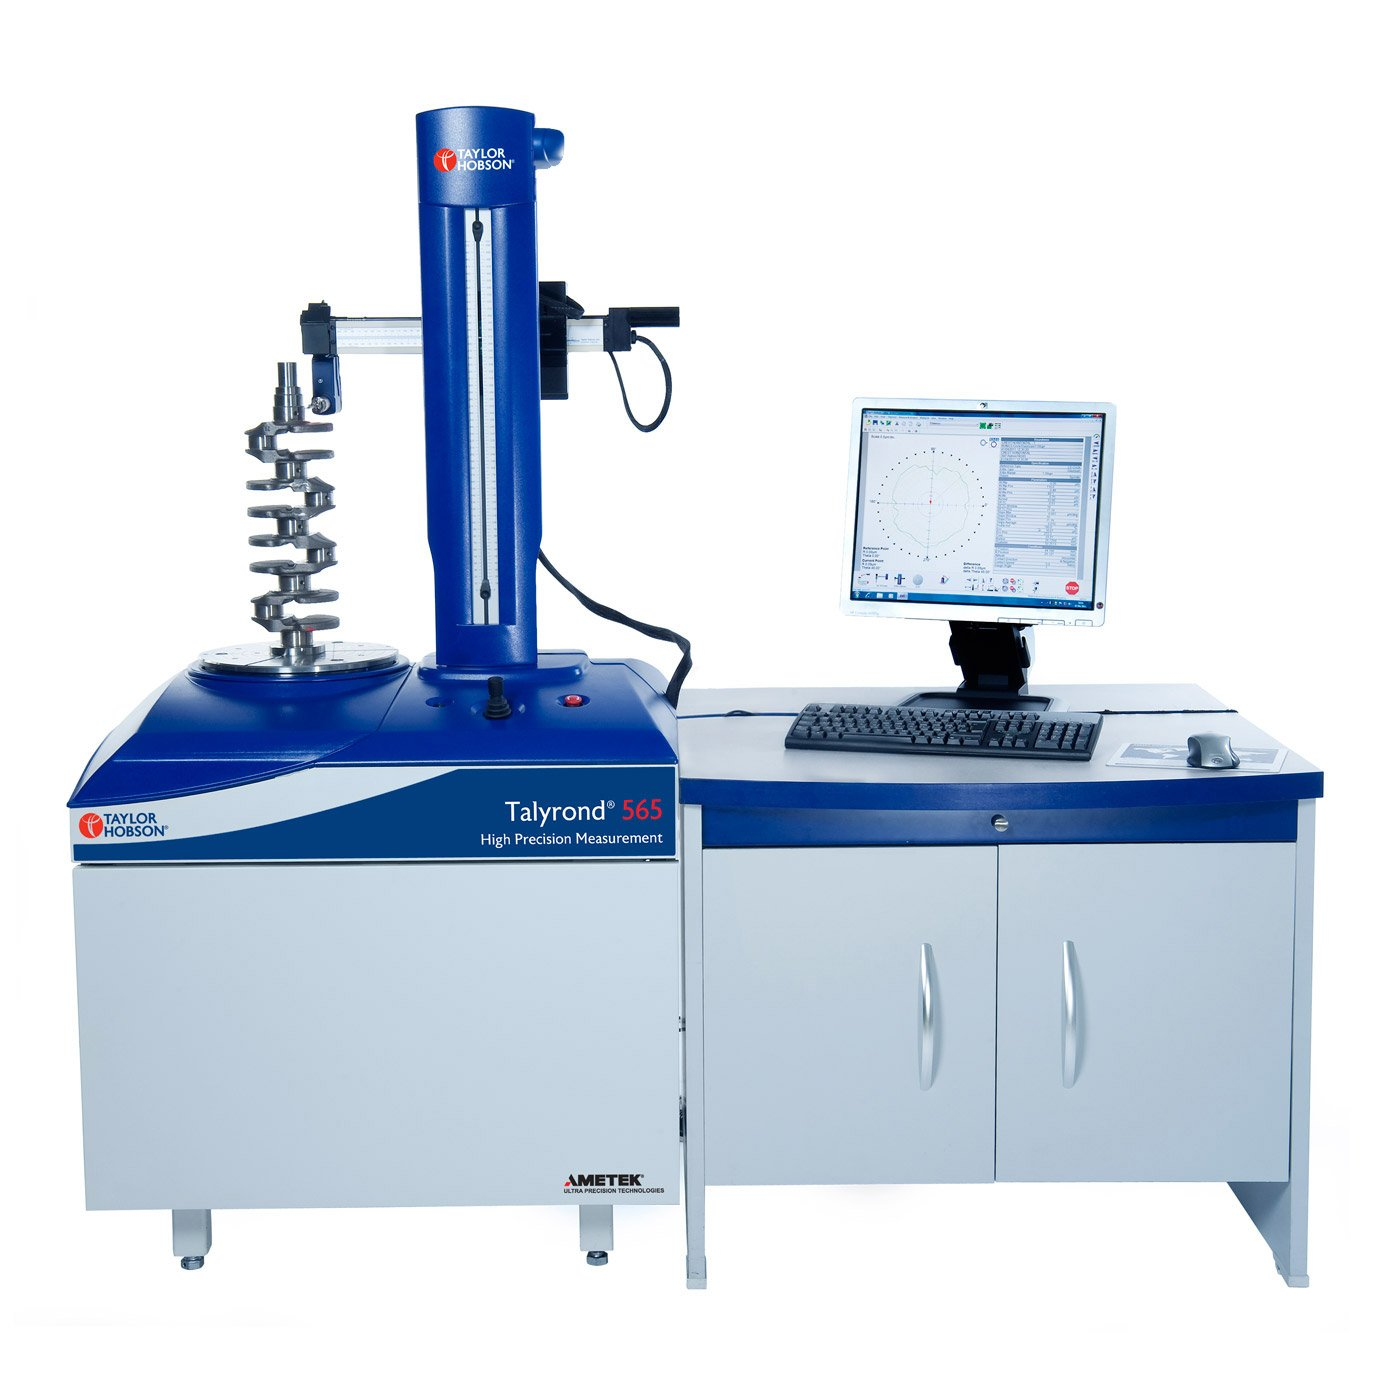 Roundness, cylindricity and straightness measurement system Talyrond 565H